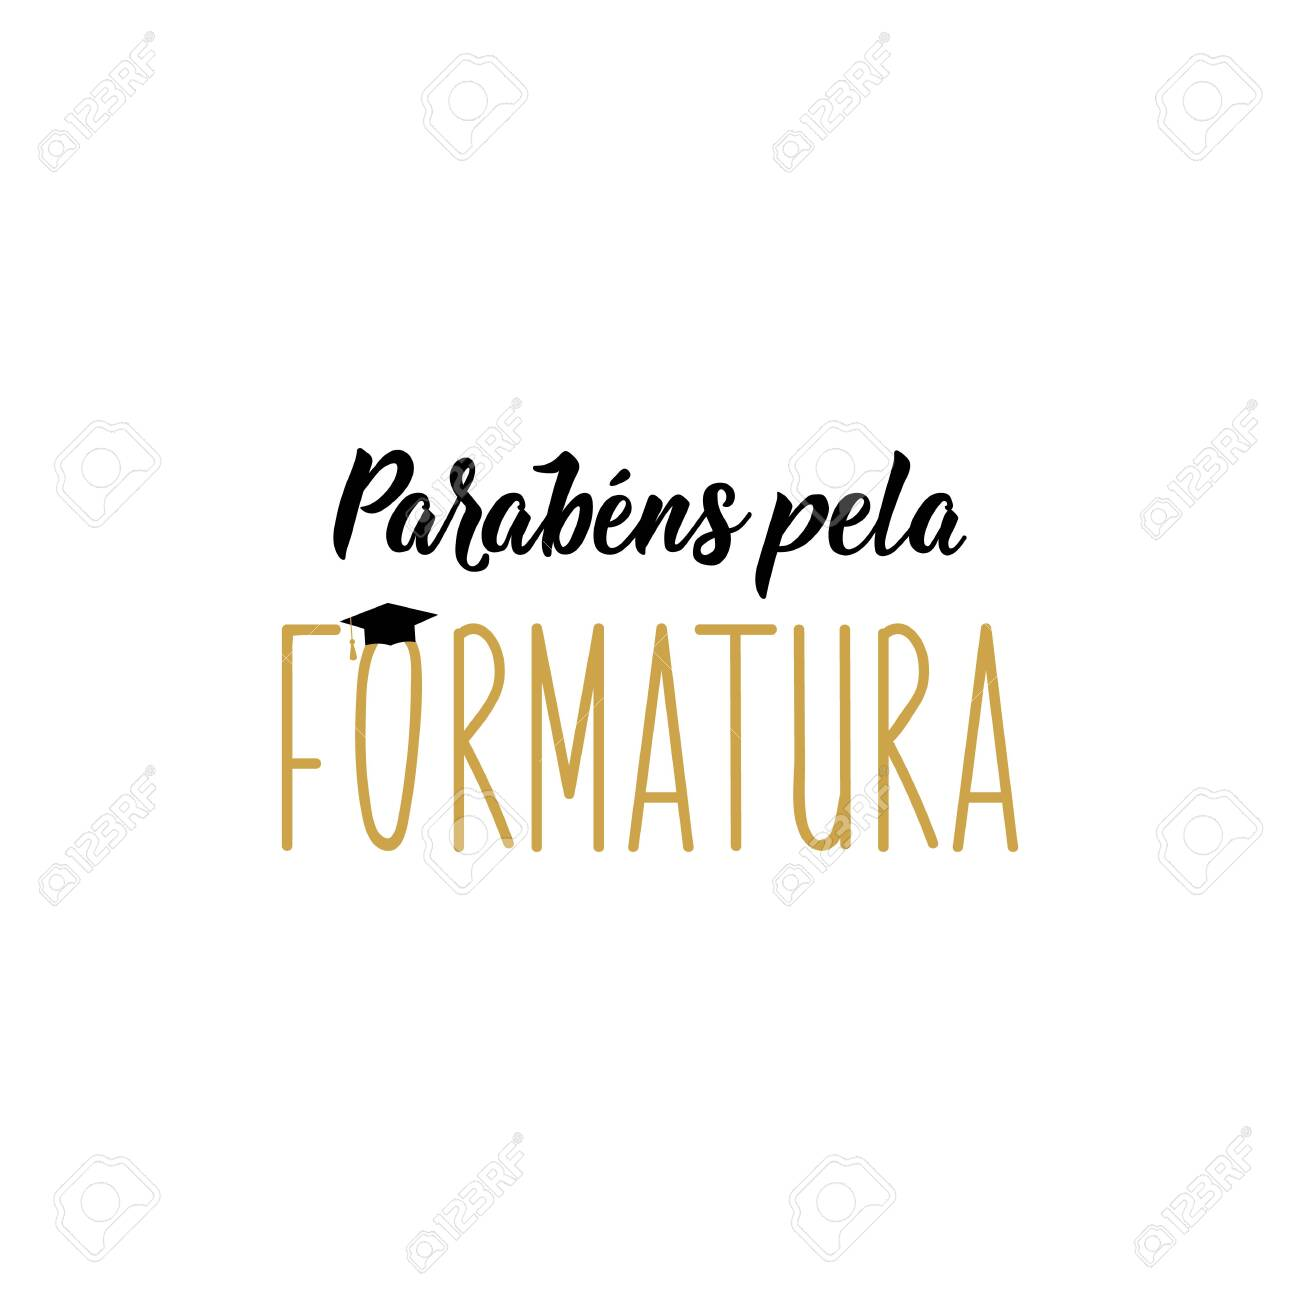 Brazilian Lettering Translation From Portuguese Congratulations Royalty Free Cliparts Vectors And Stock Illustration Image 145212032